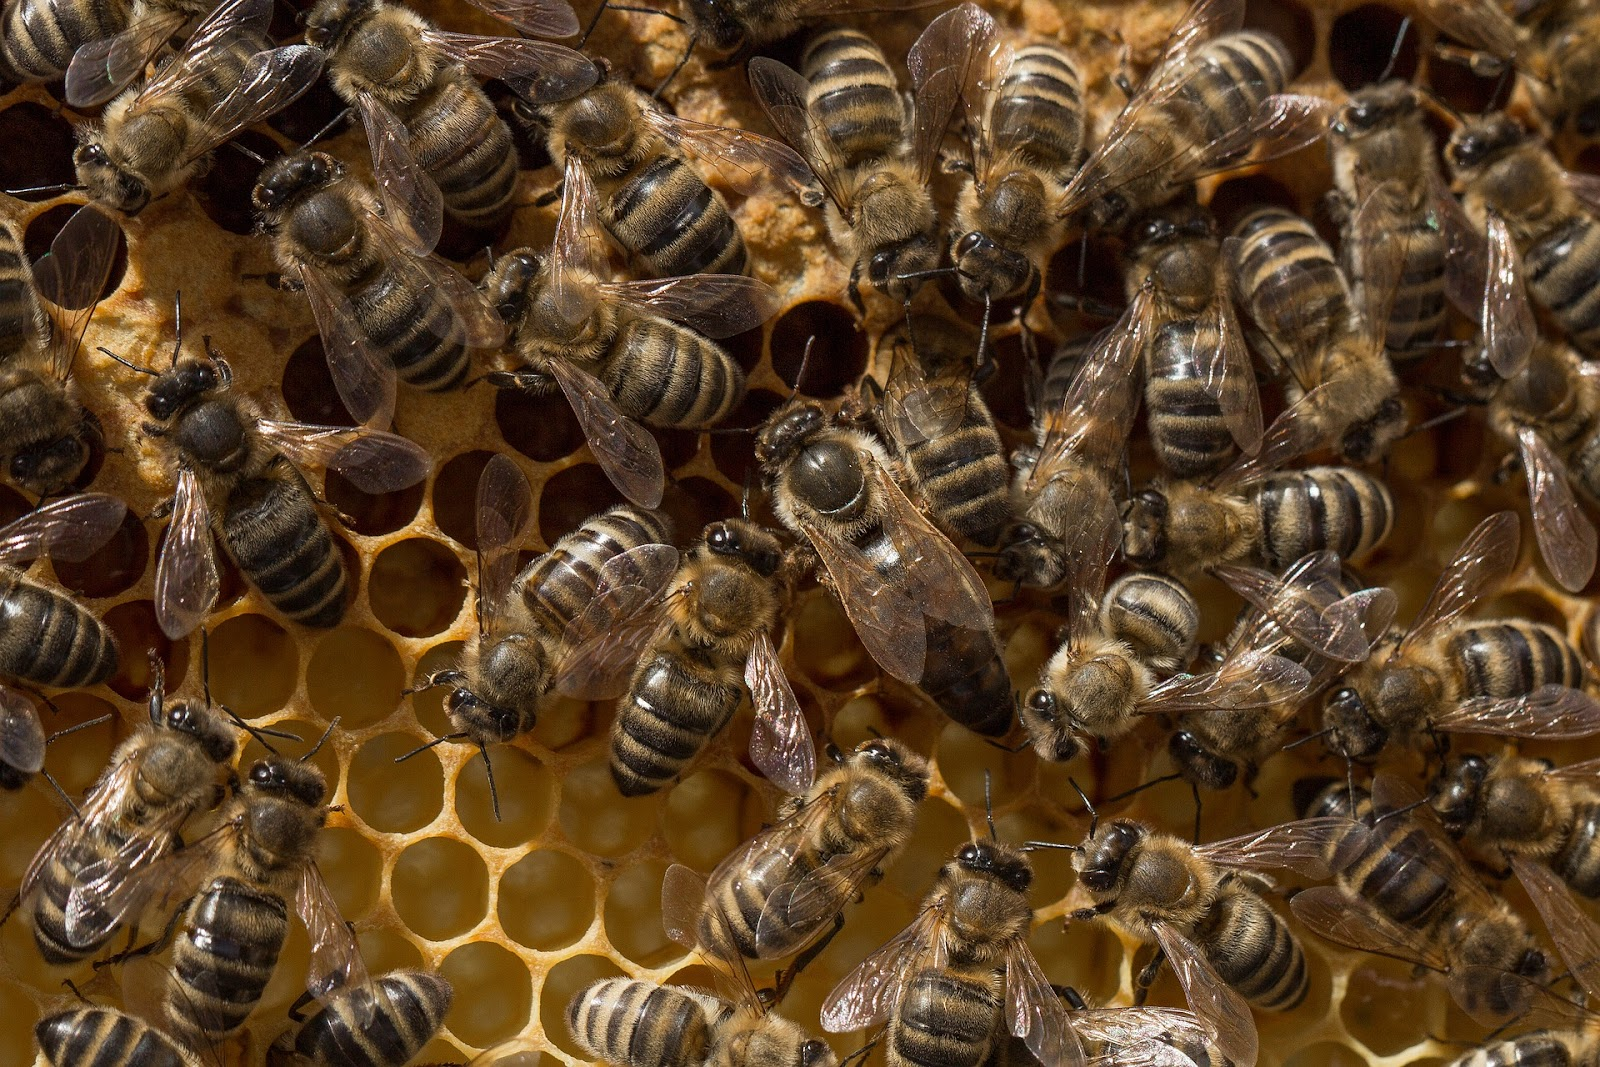 Just Bees, Just Bees